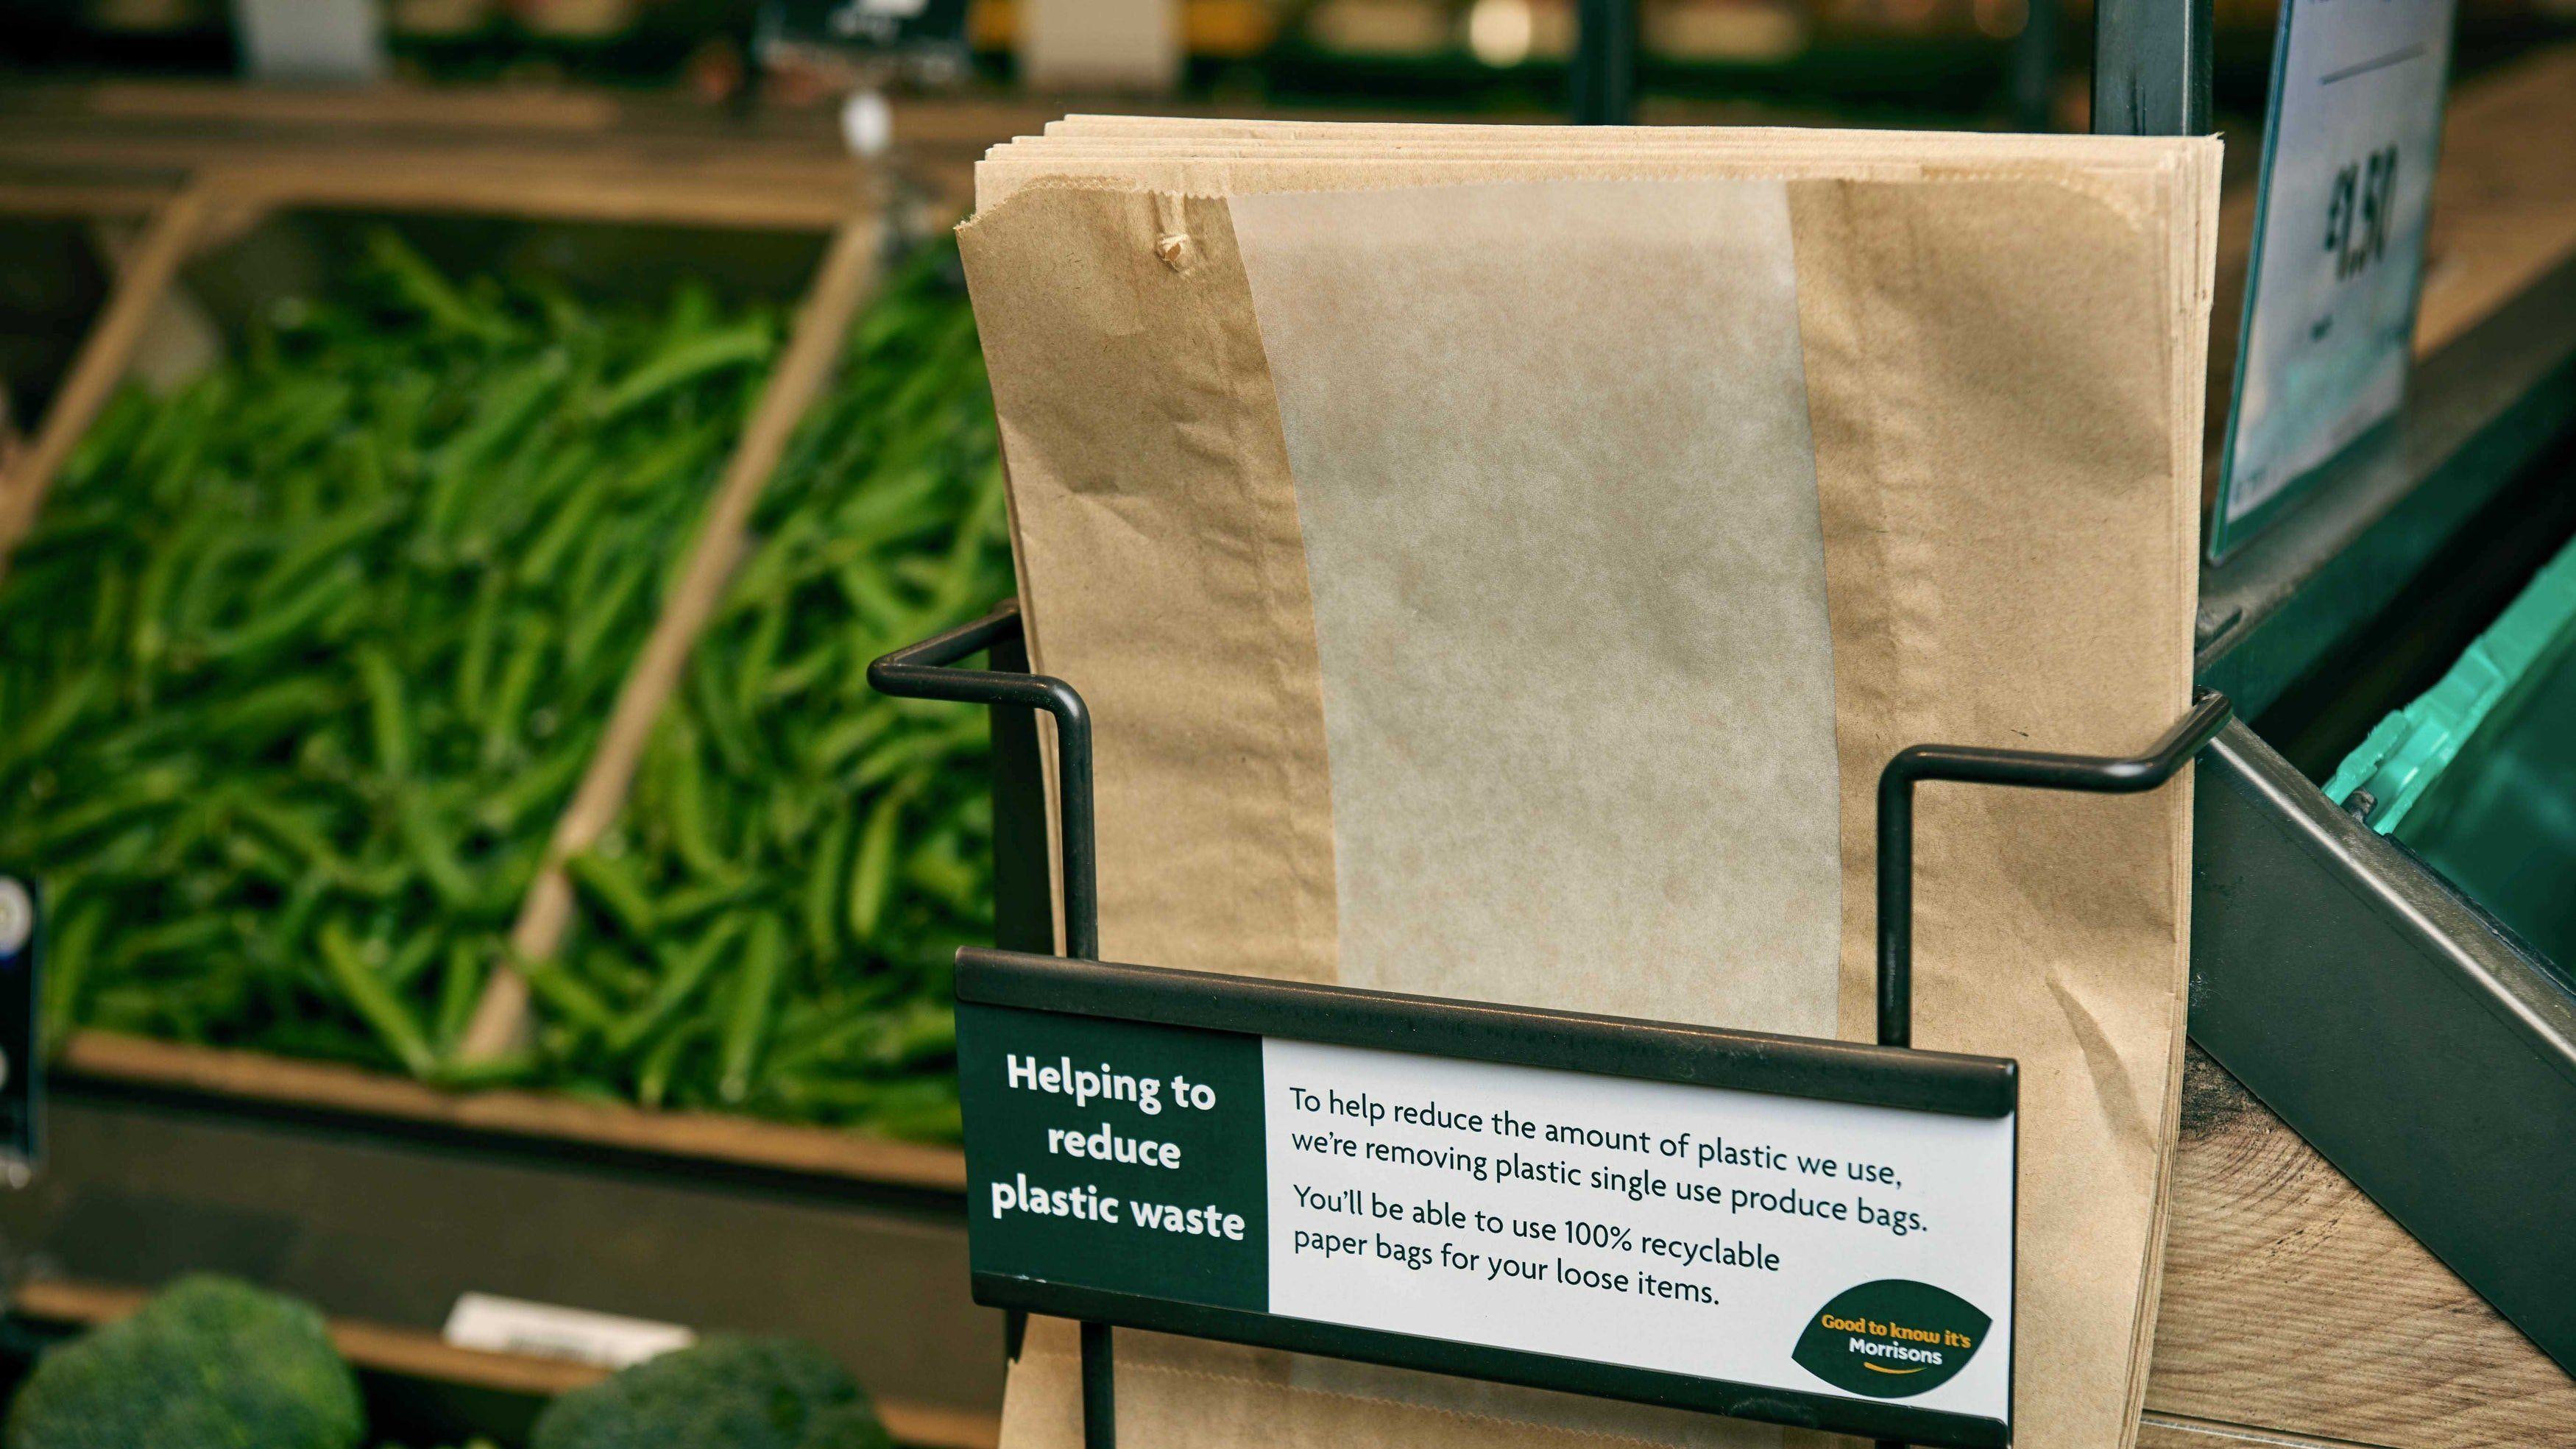 Morrisons Aims To Save 150 Million Plastic Bags Per Year With Paper Bags For Fruit And Veg